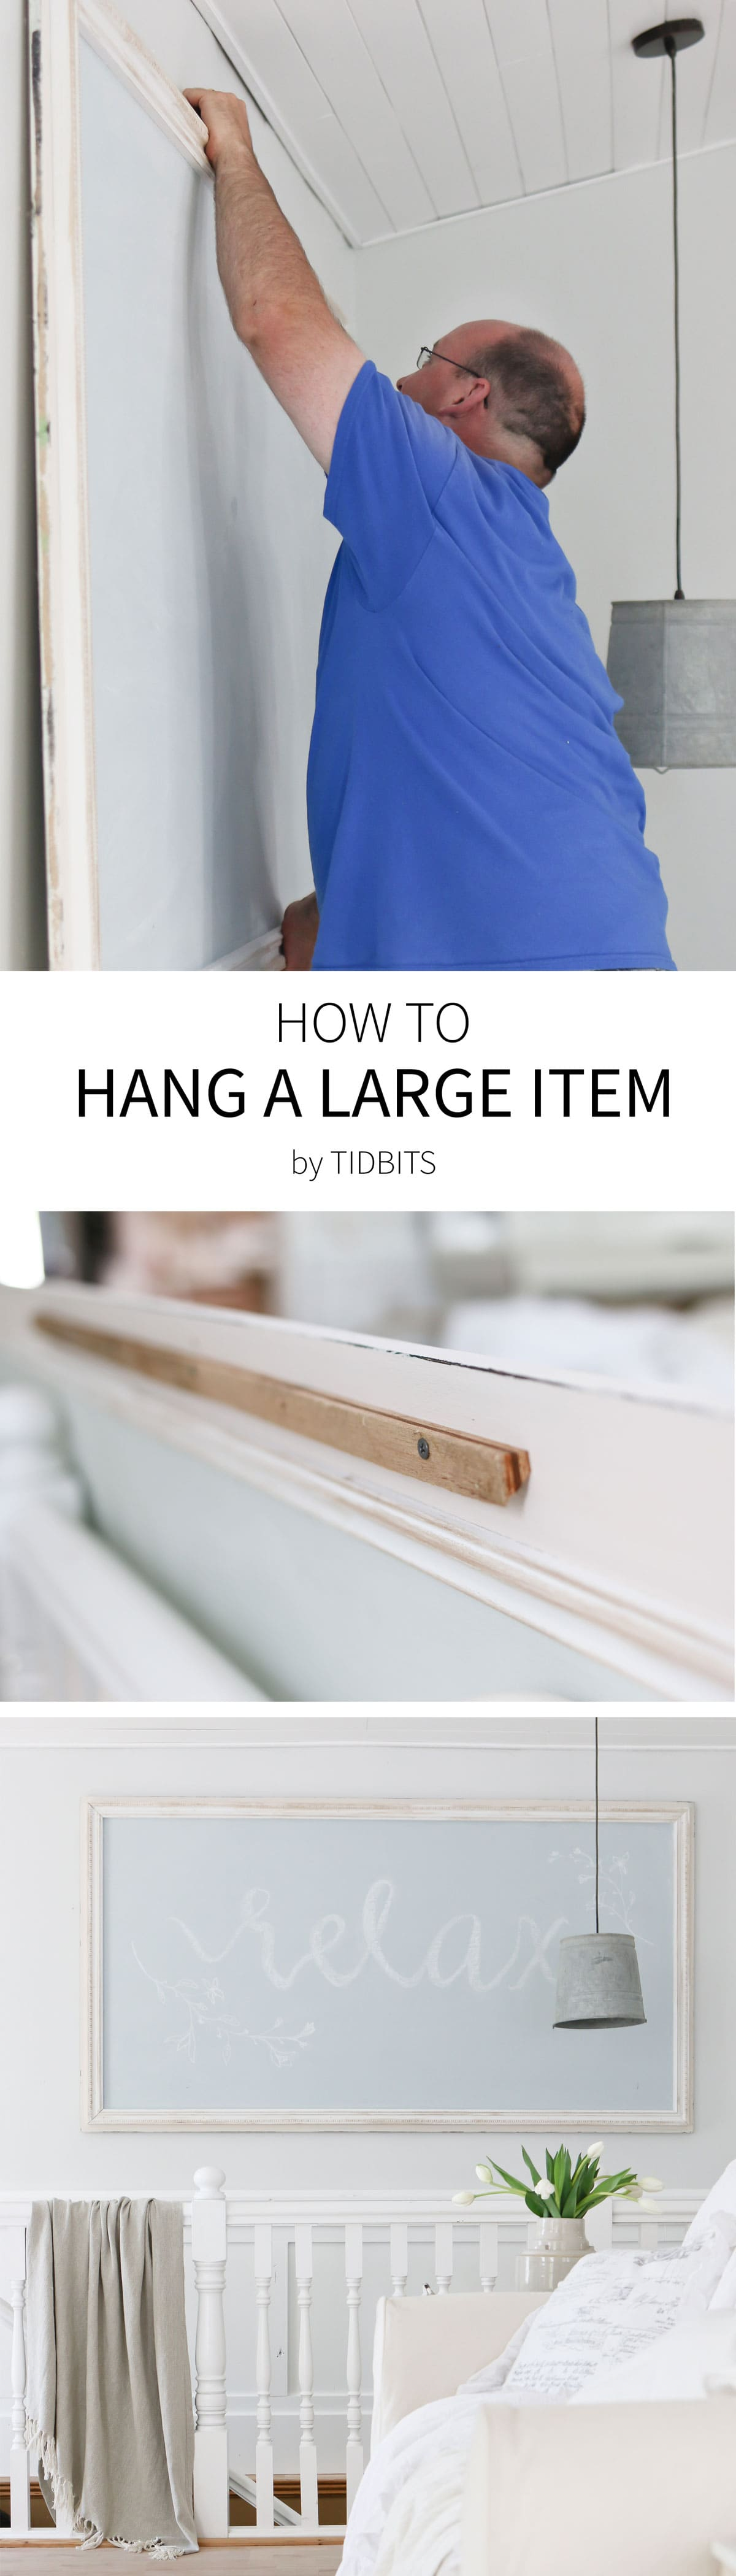 How To Hang A Large Item On The Wall